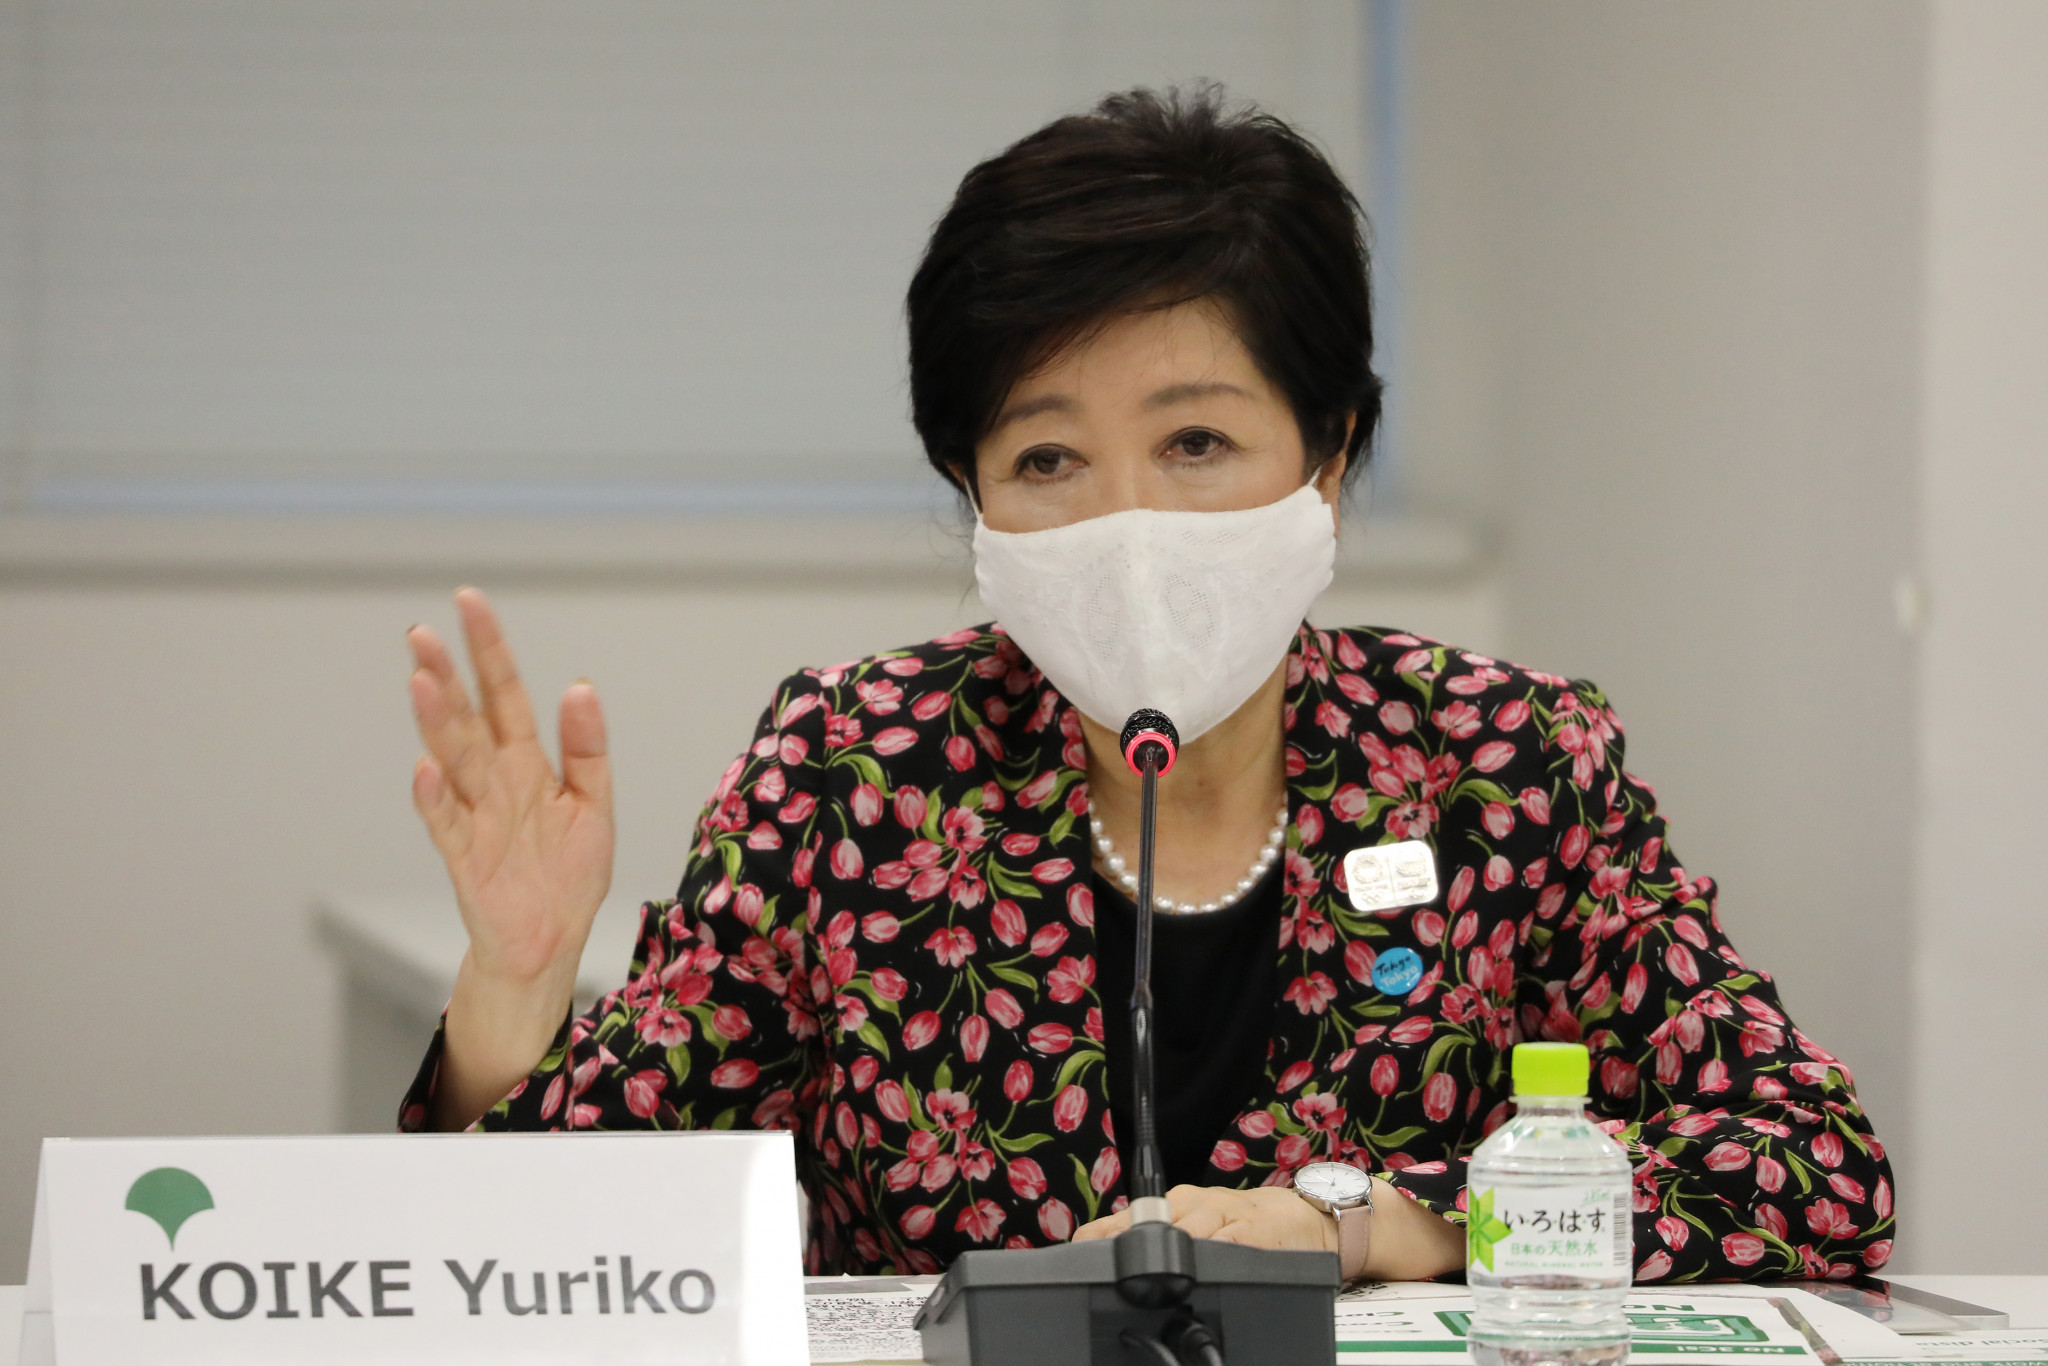 Tokyo Governor Yuriko Koike has revealed she hopes the Olympic and Paralympic Games will have